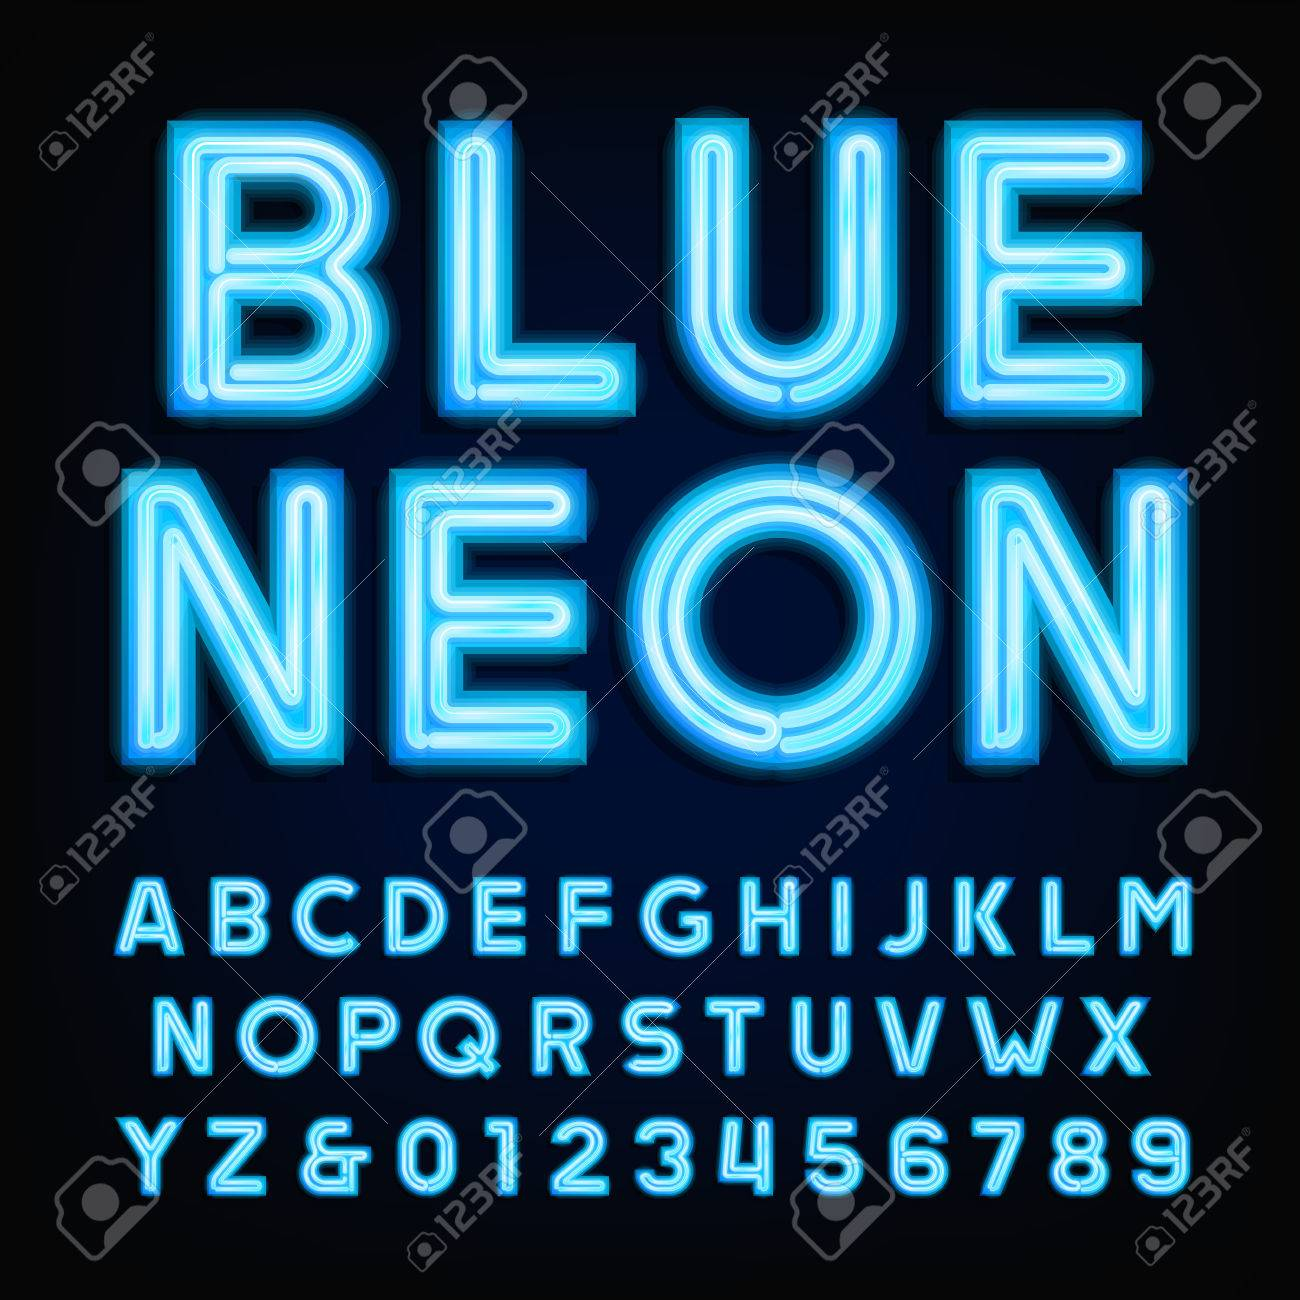 blue neon tube alphabet font type letters and numbers on a dark background typeface